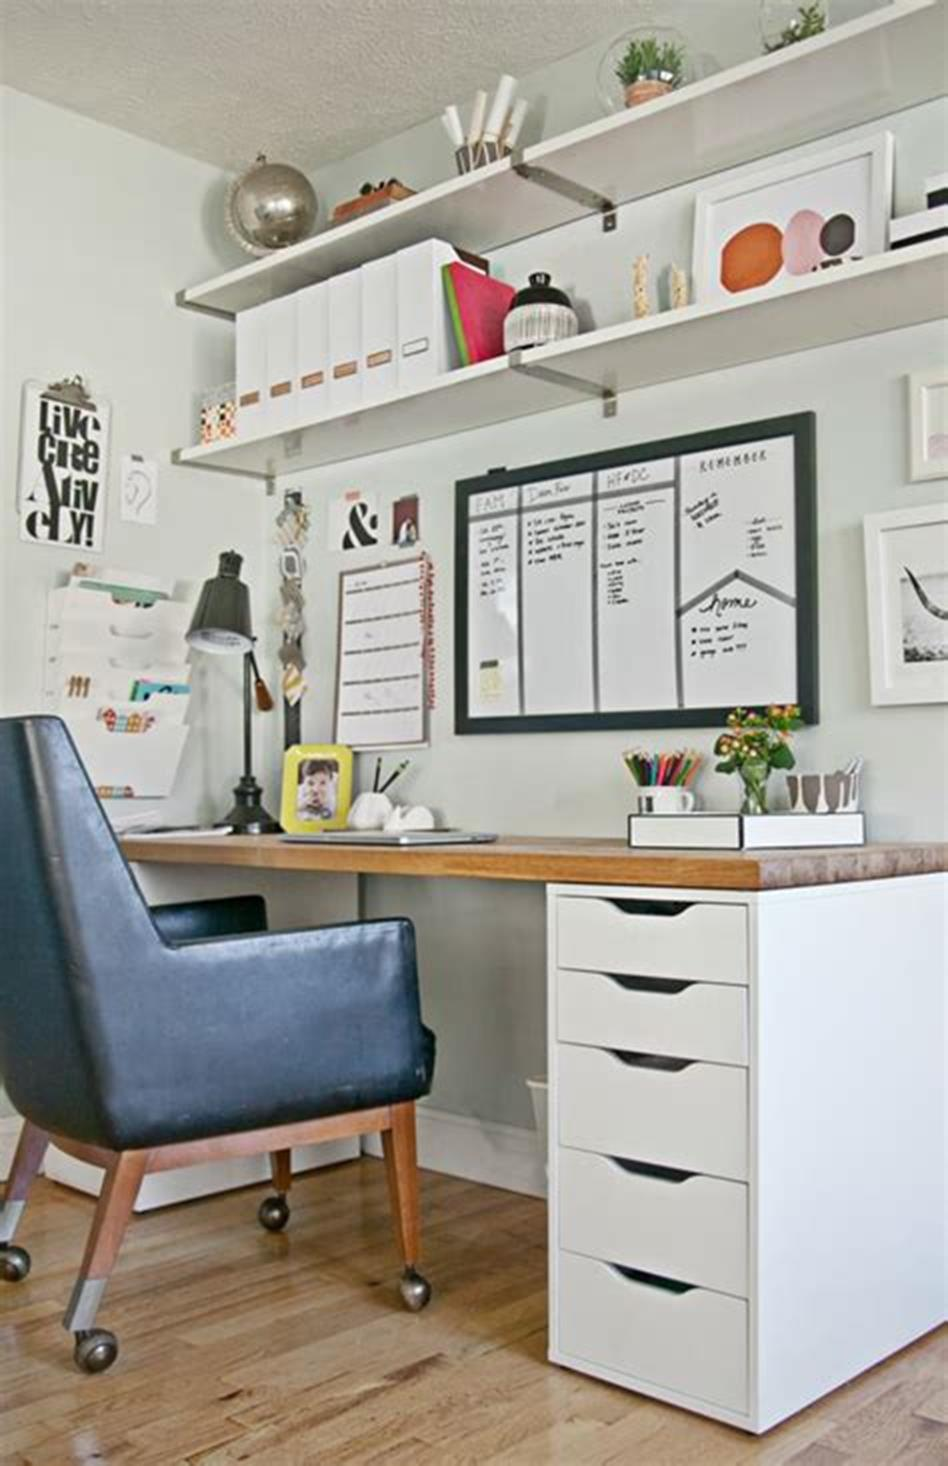 50 Best Small Space Office Decorating Ideas On a Budget 2019 40